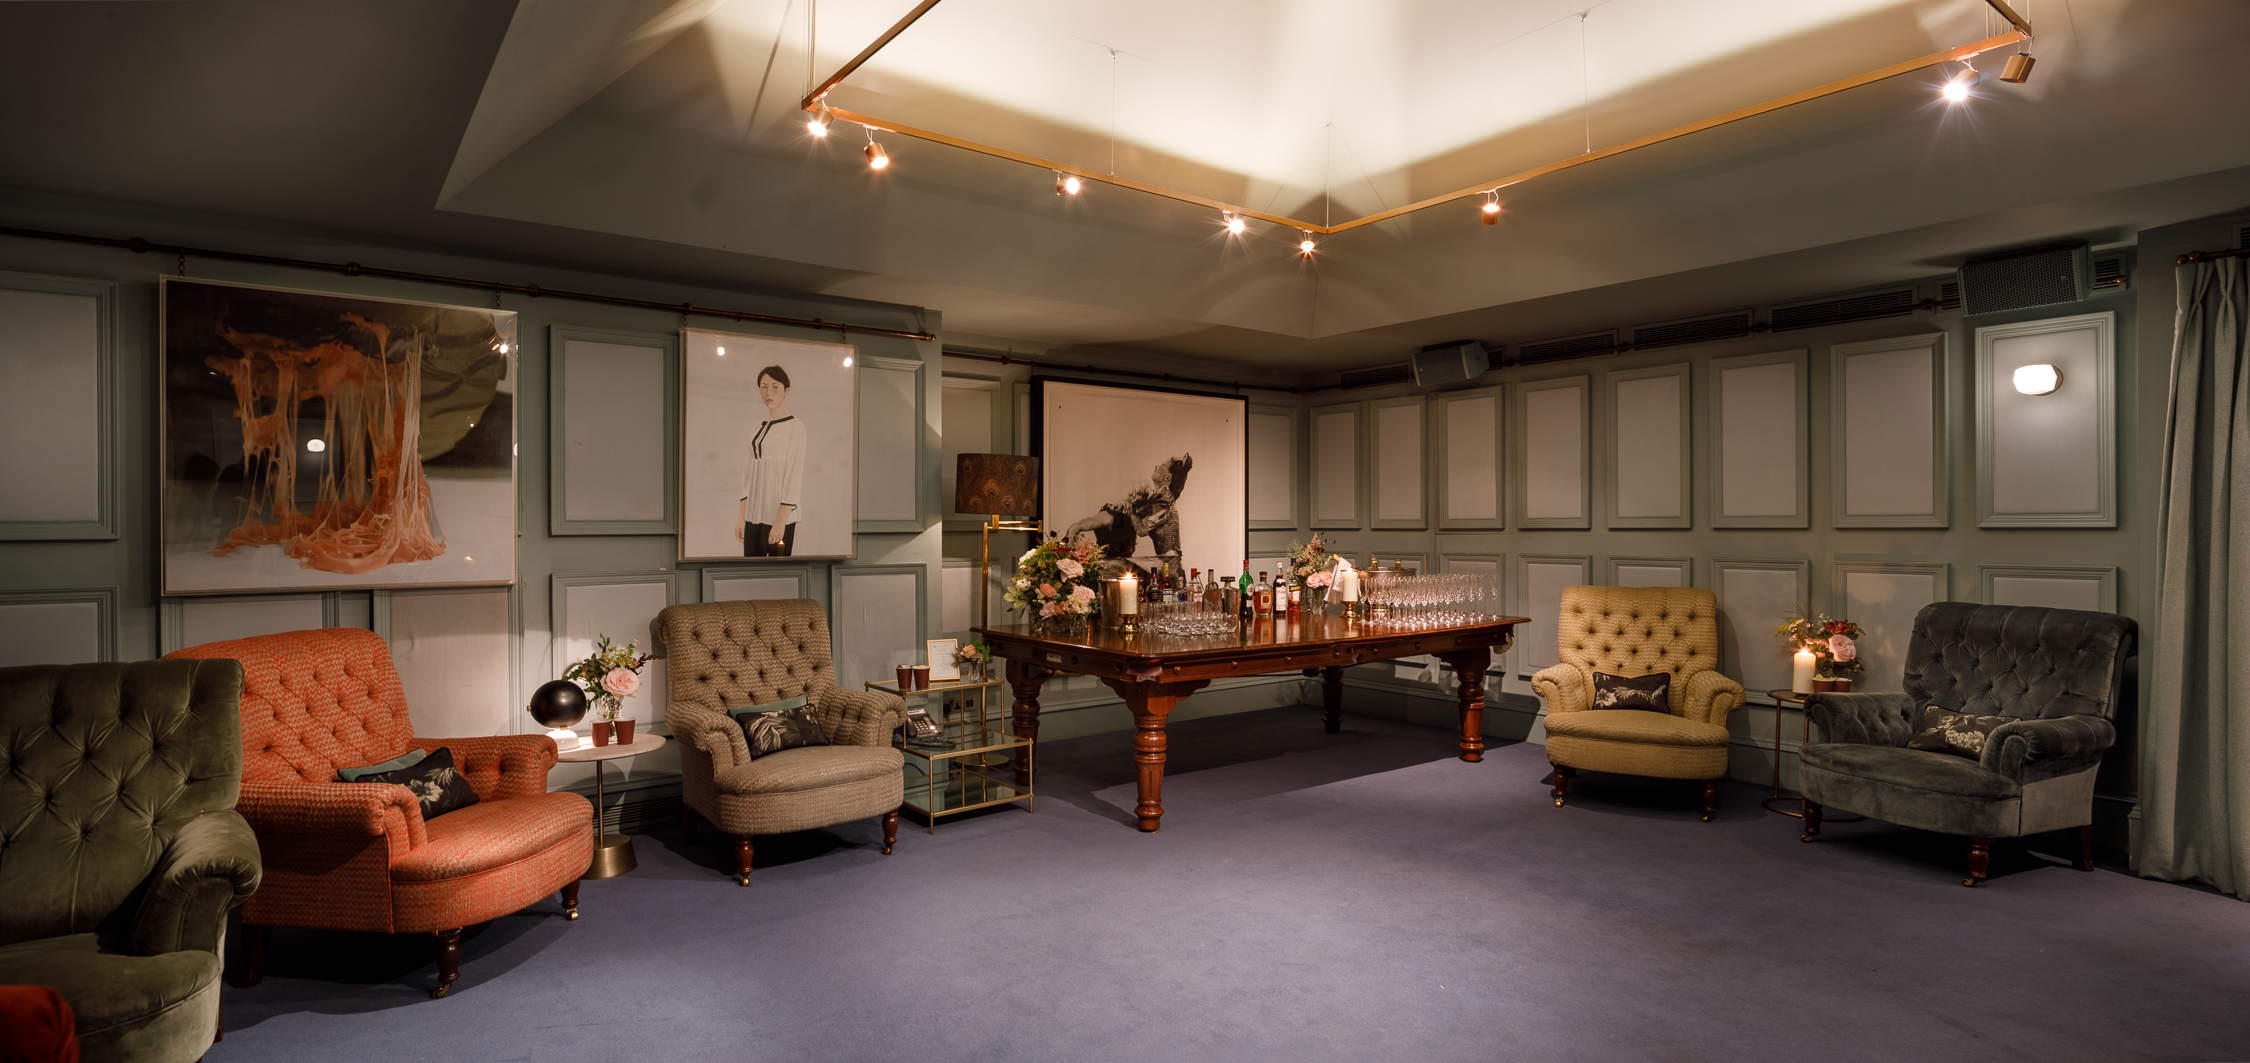 The Groucho Club Leicester Square London Bar Reviews